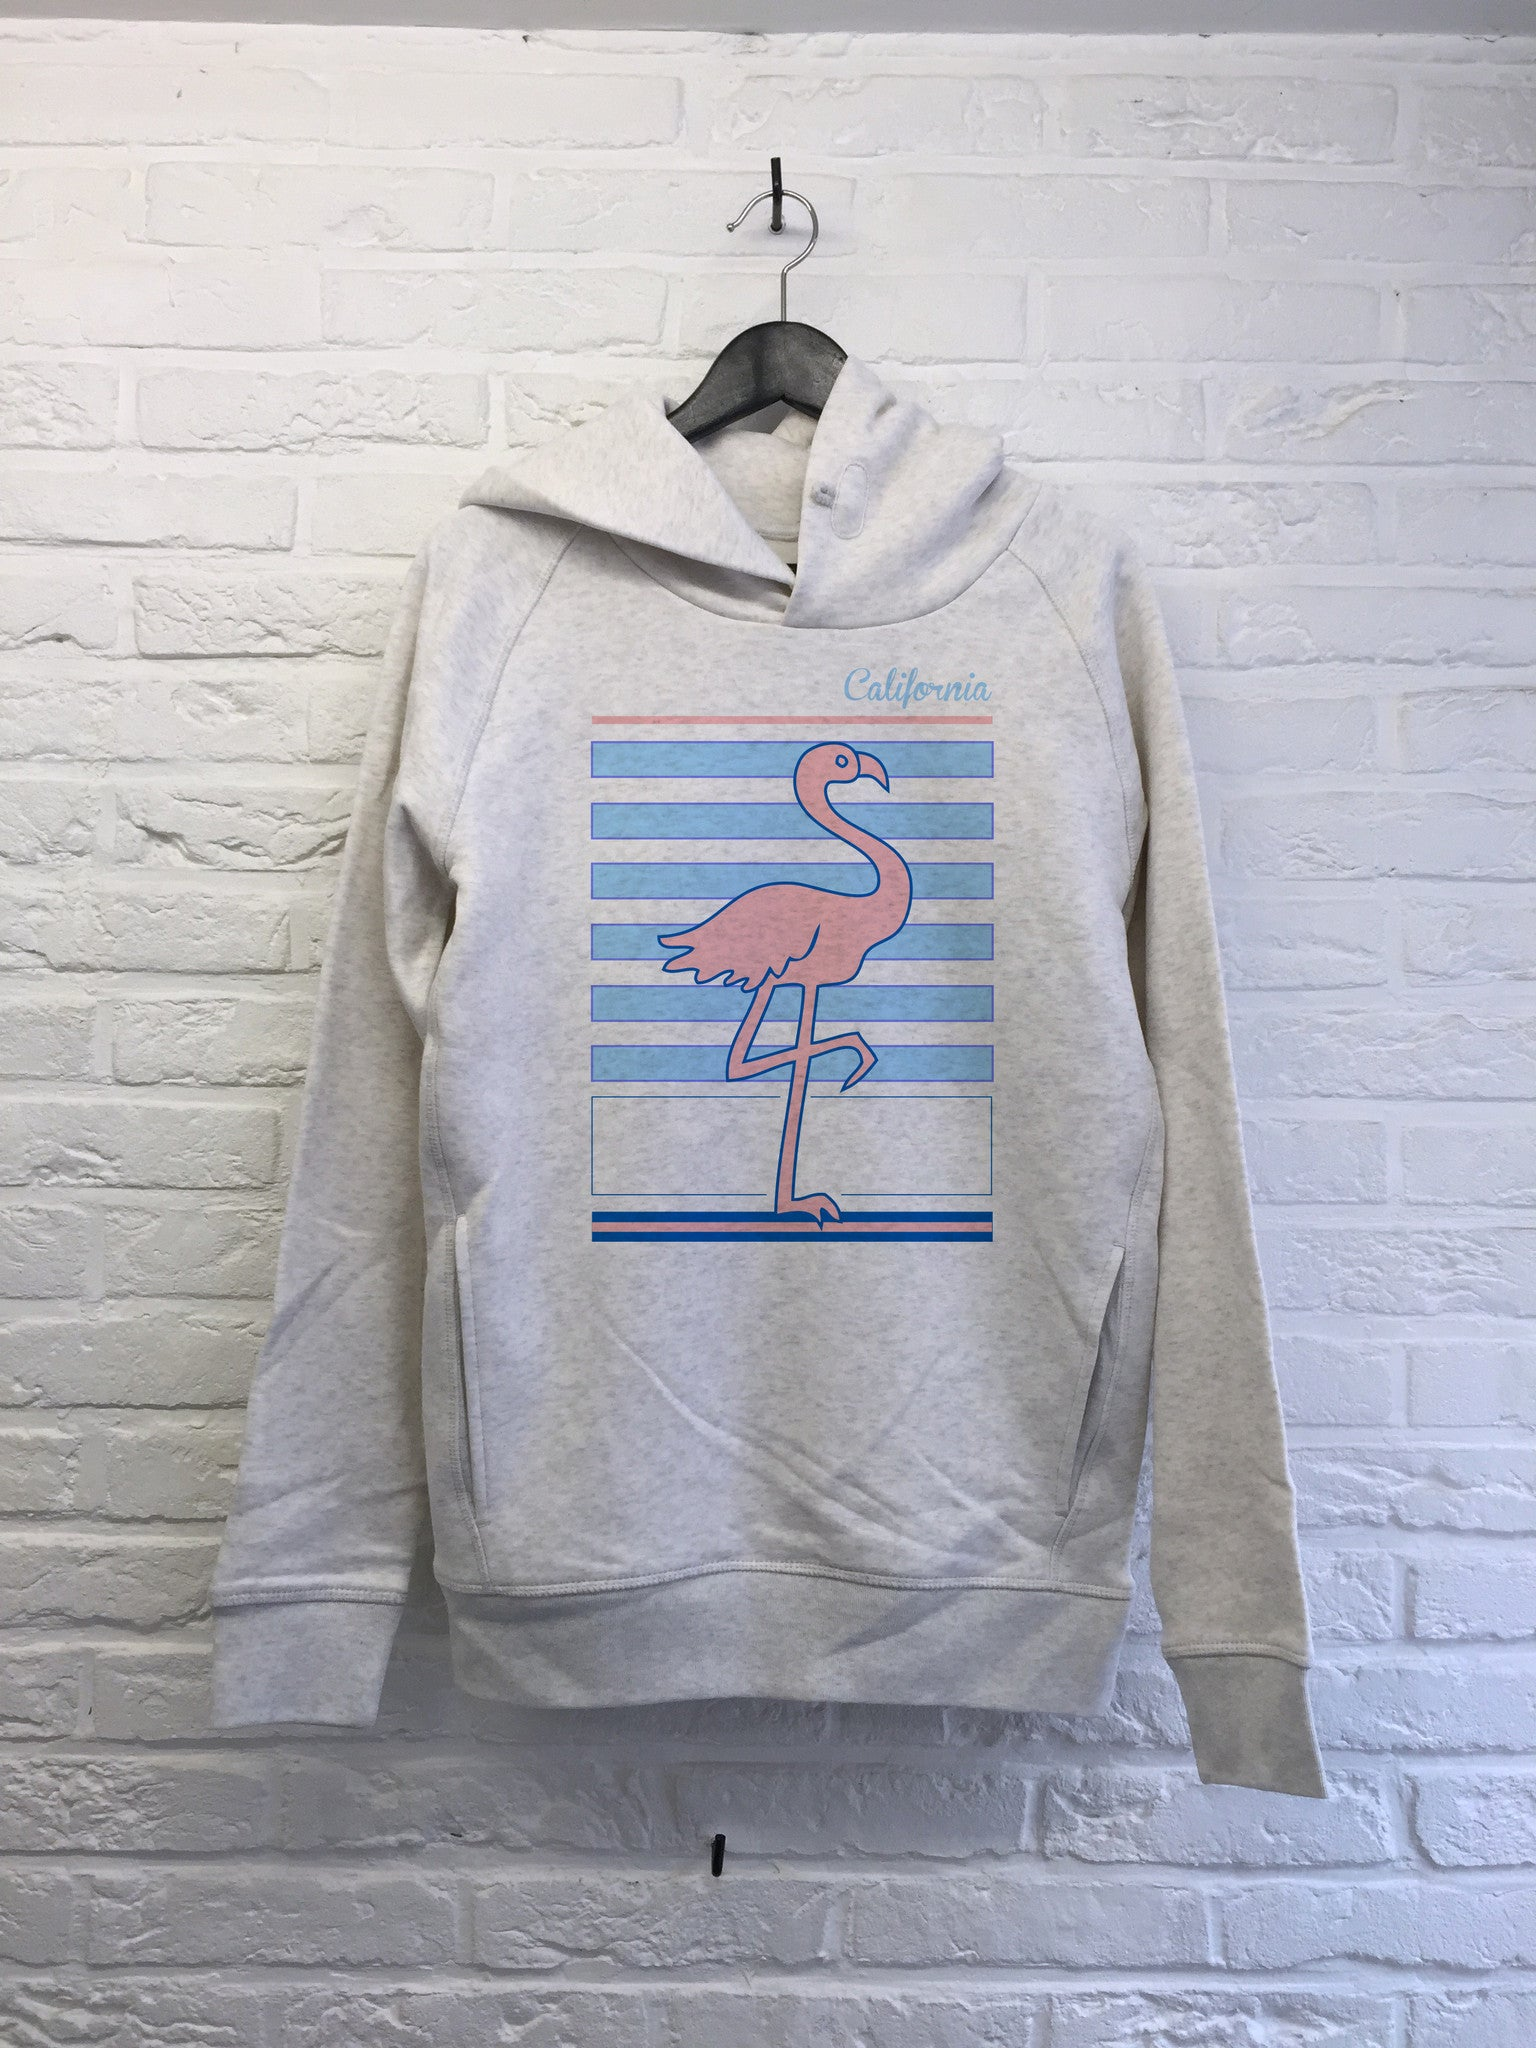 Flamant rose Californie - Hoodie Deluxe-Sweat shirts-Atelier Amelot